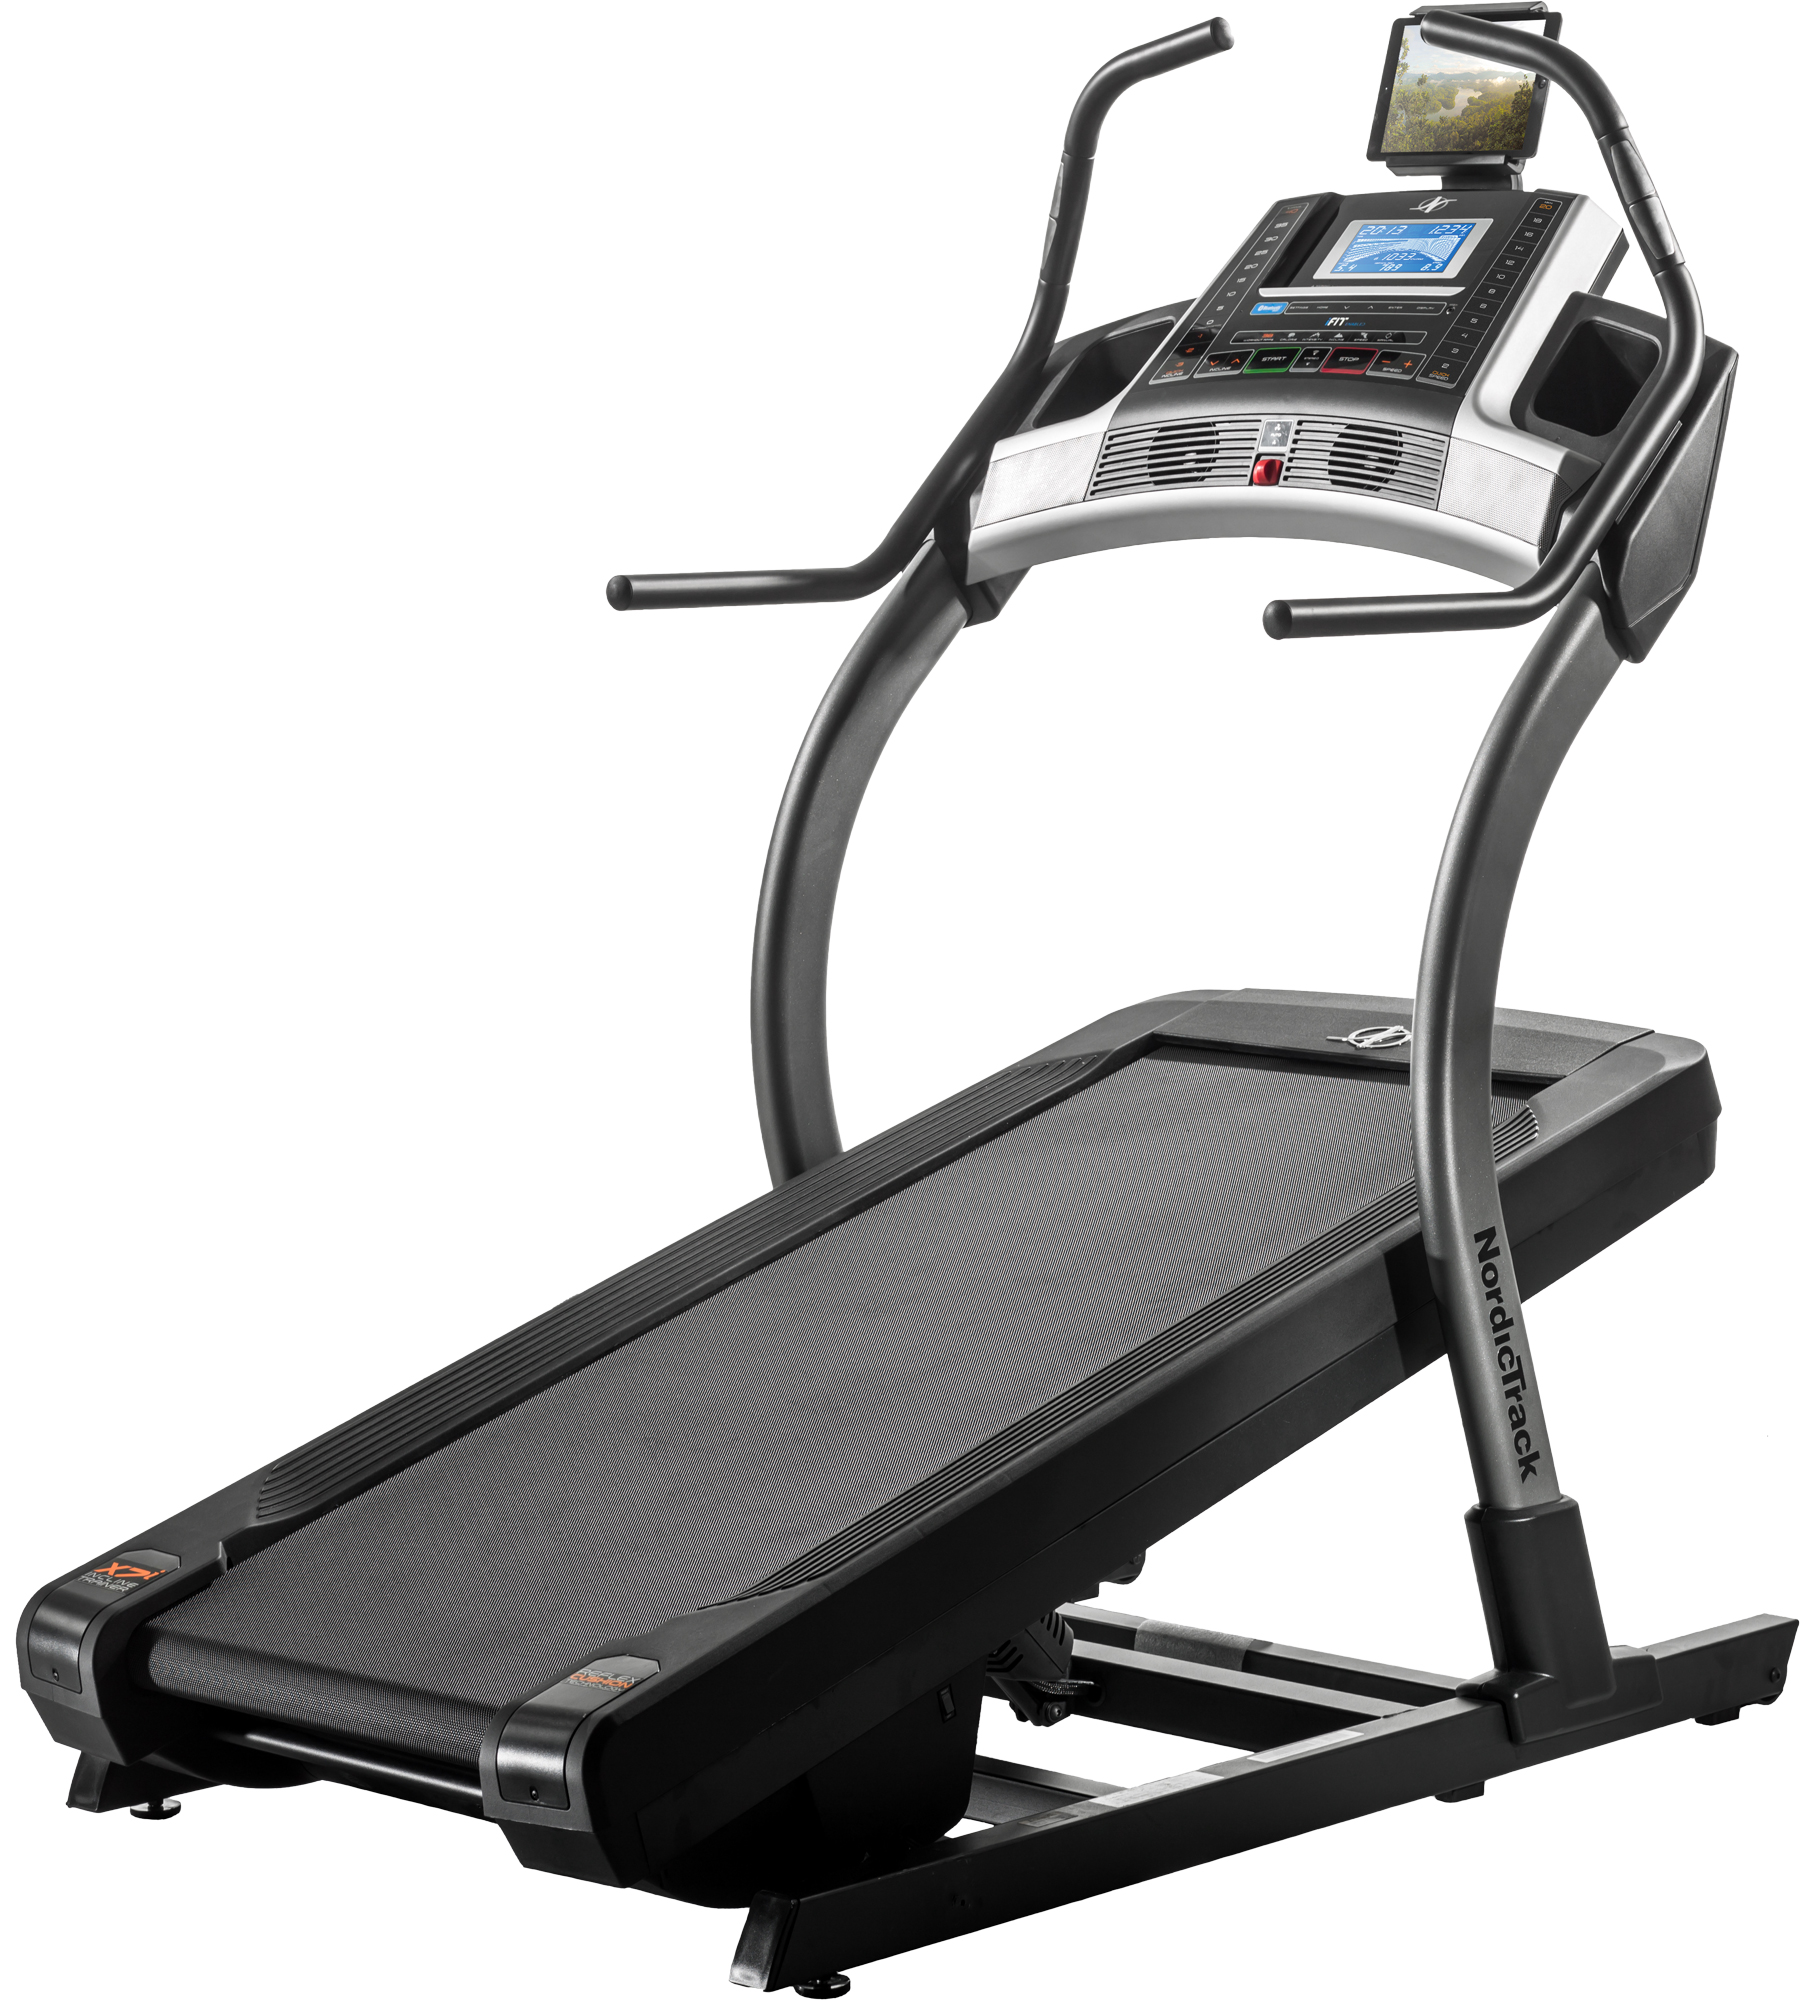 NordicTrack Incline Trainer X7i (NETL18716)